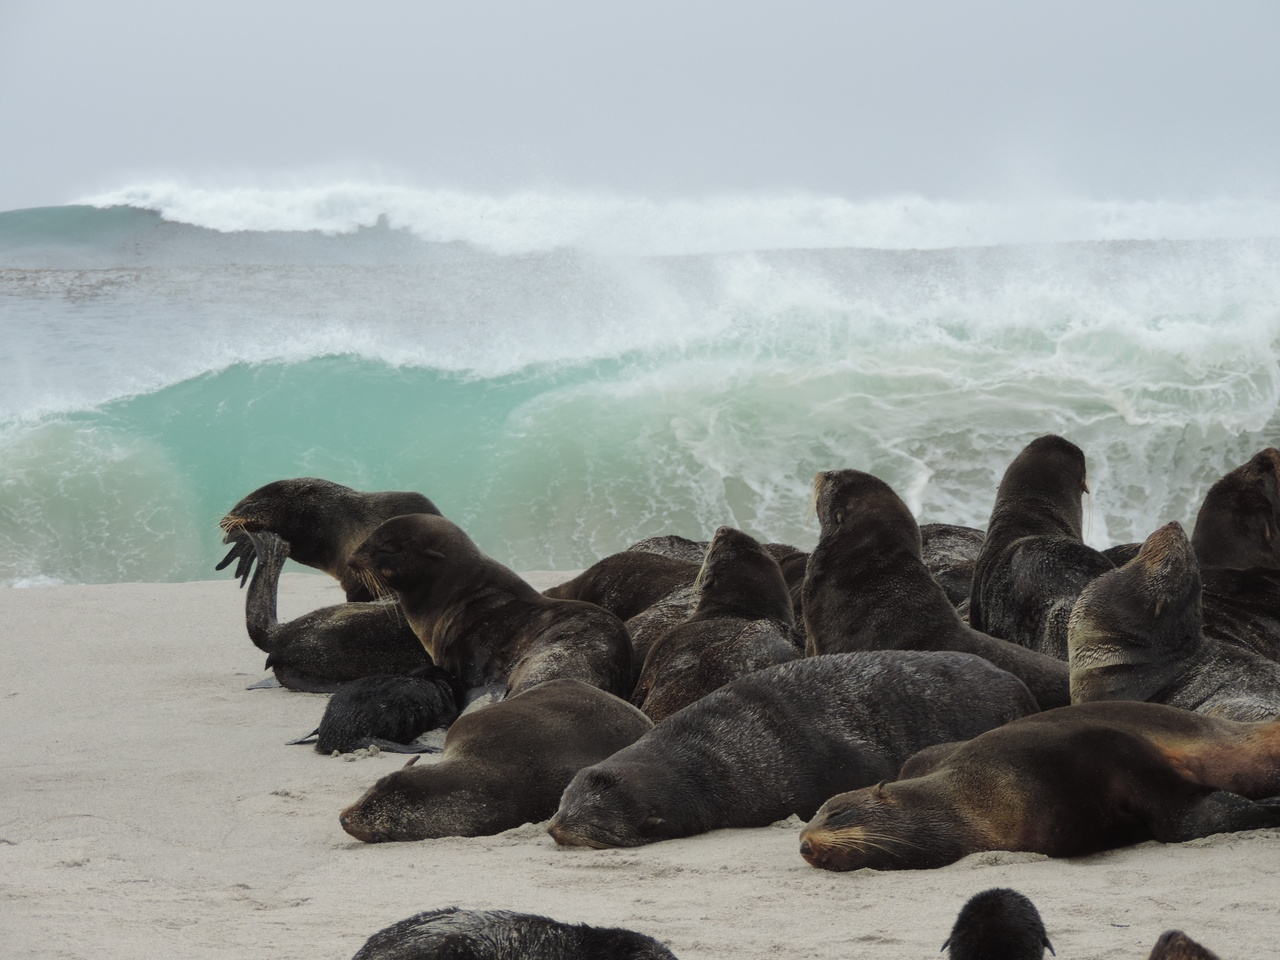 Northern fur seals on a beach.